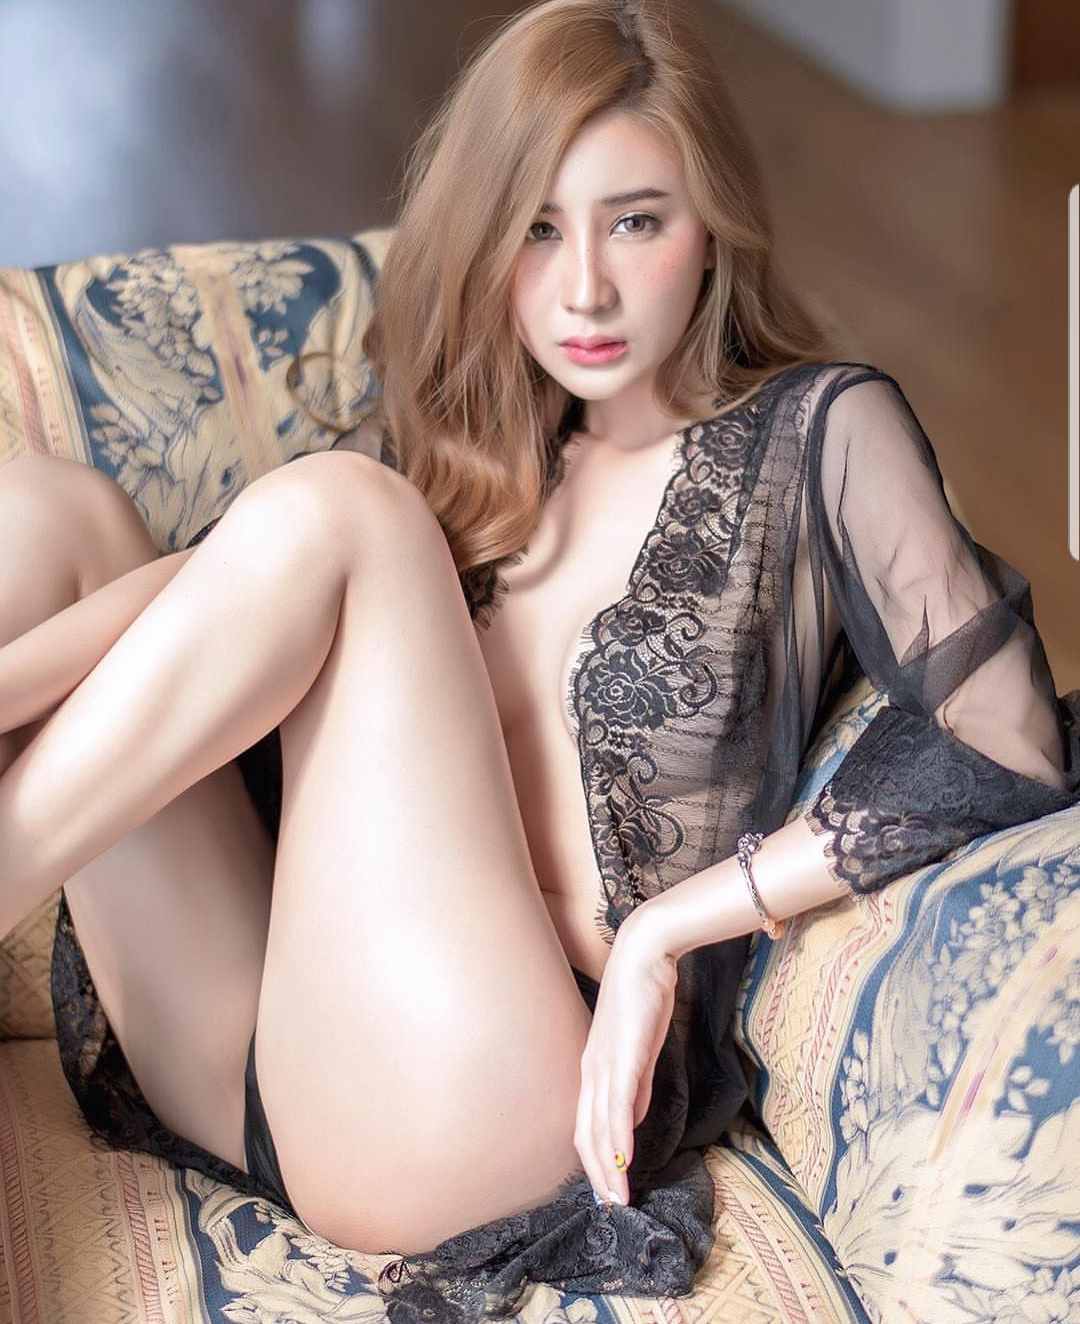 Educated Luxury Singapore Escort Courtesan Sofie